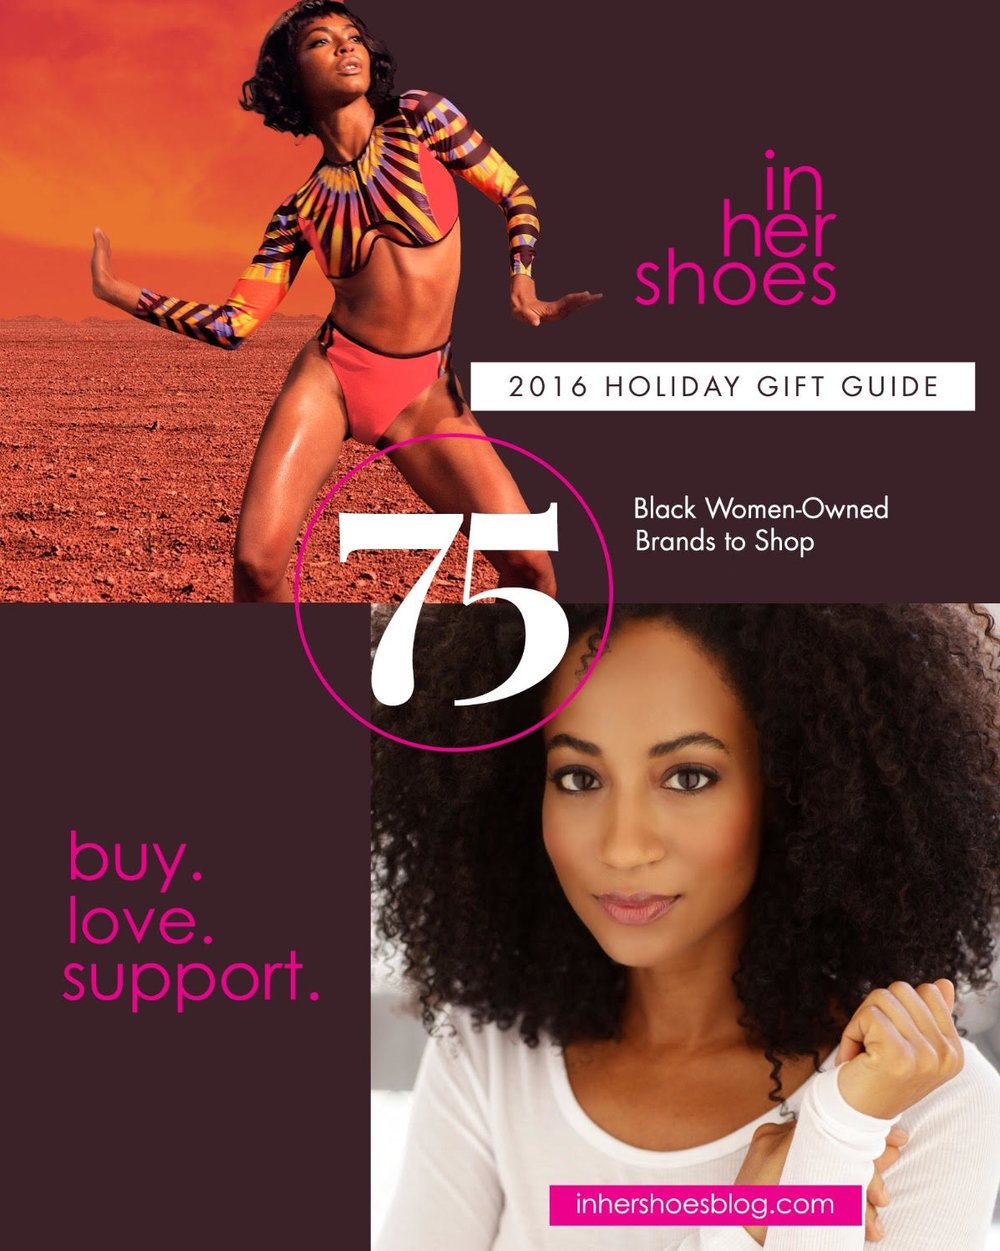 Thanks to InHerShoesBlog.com for including us in their holiday gift guide. Go to the site to check out the list of 75 black women-owned brands.